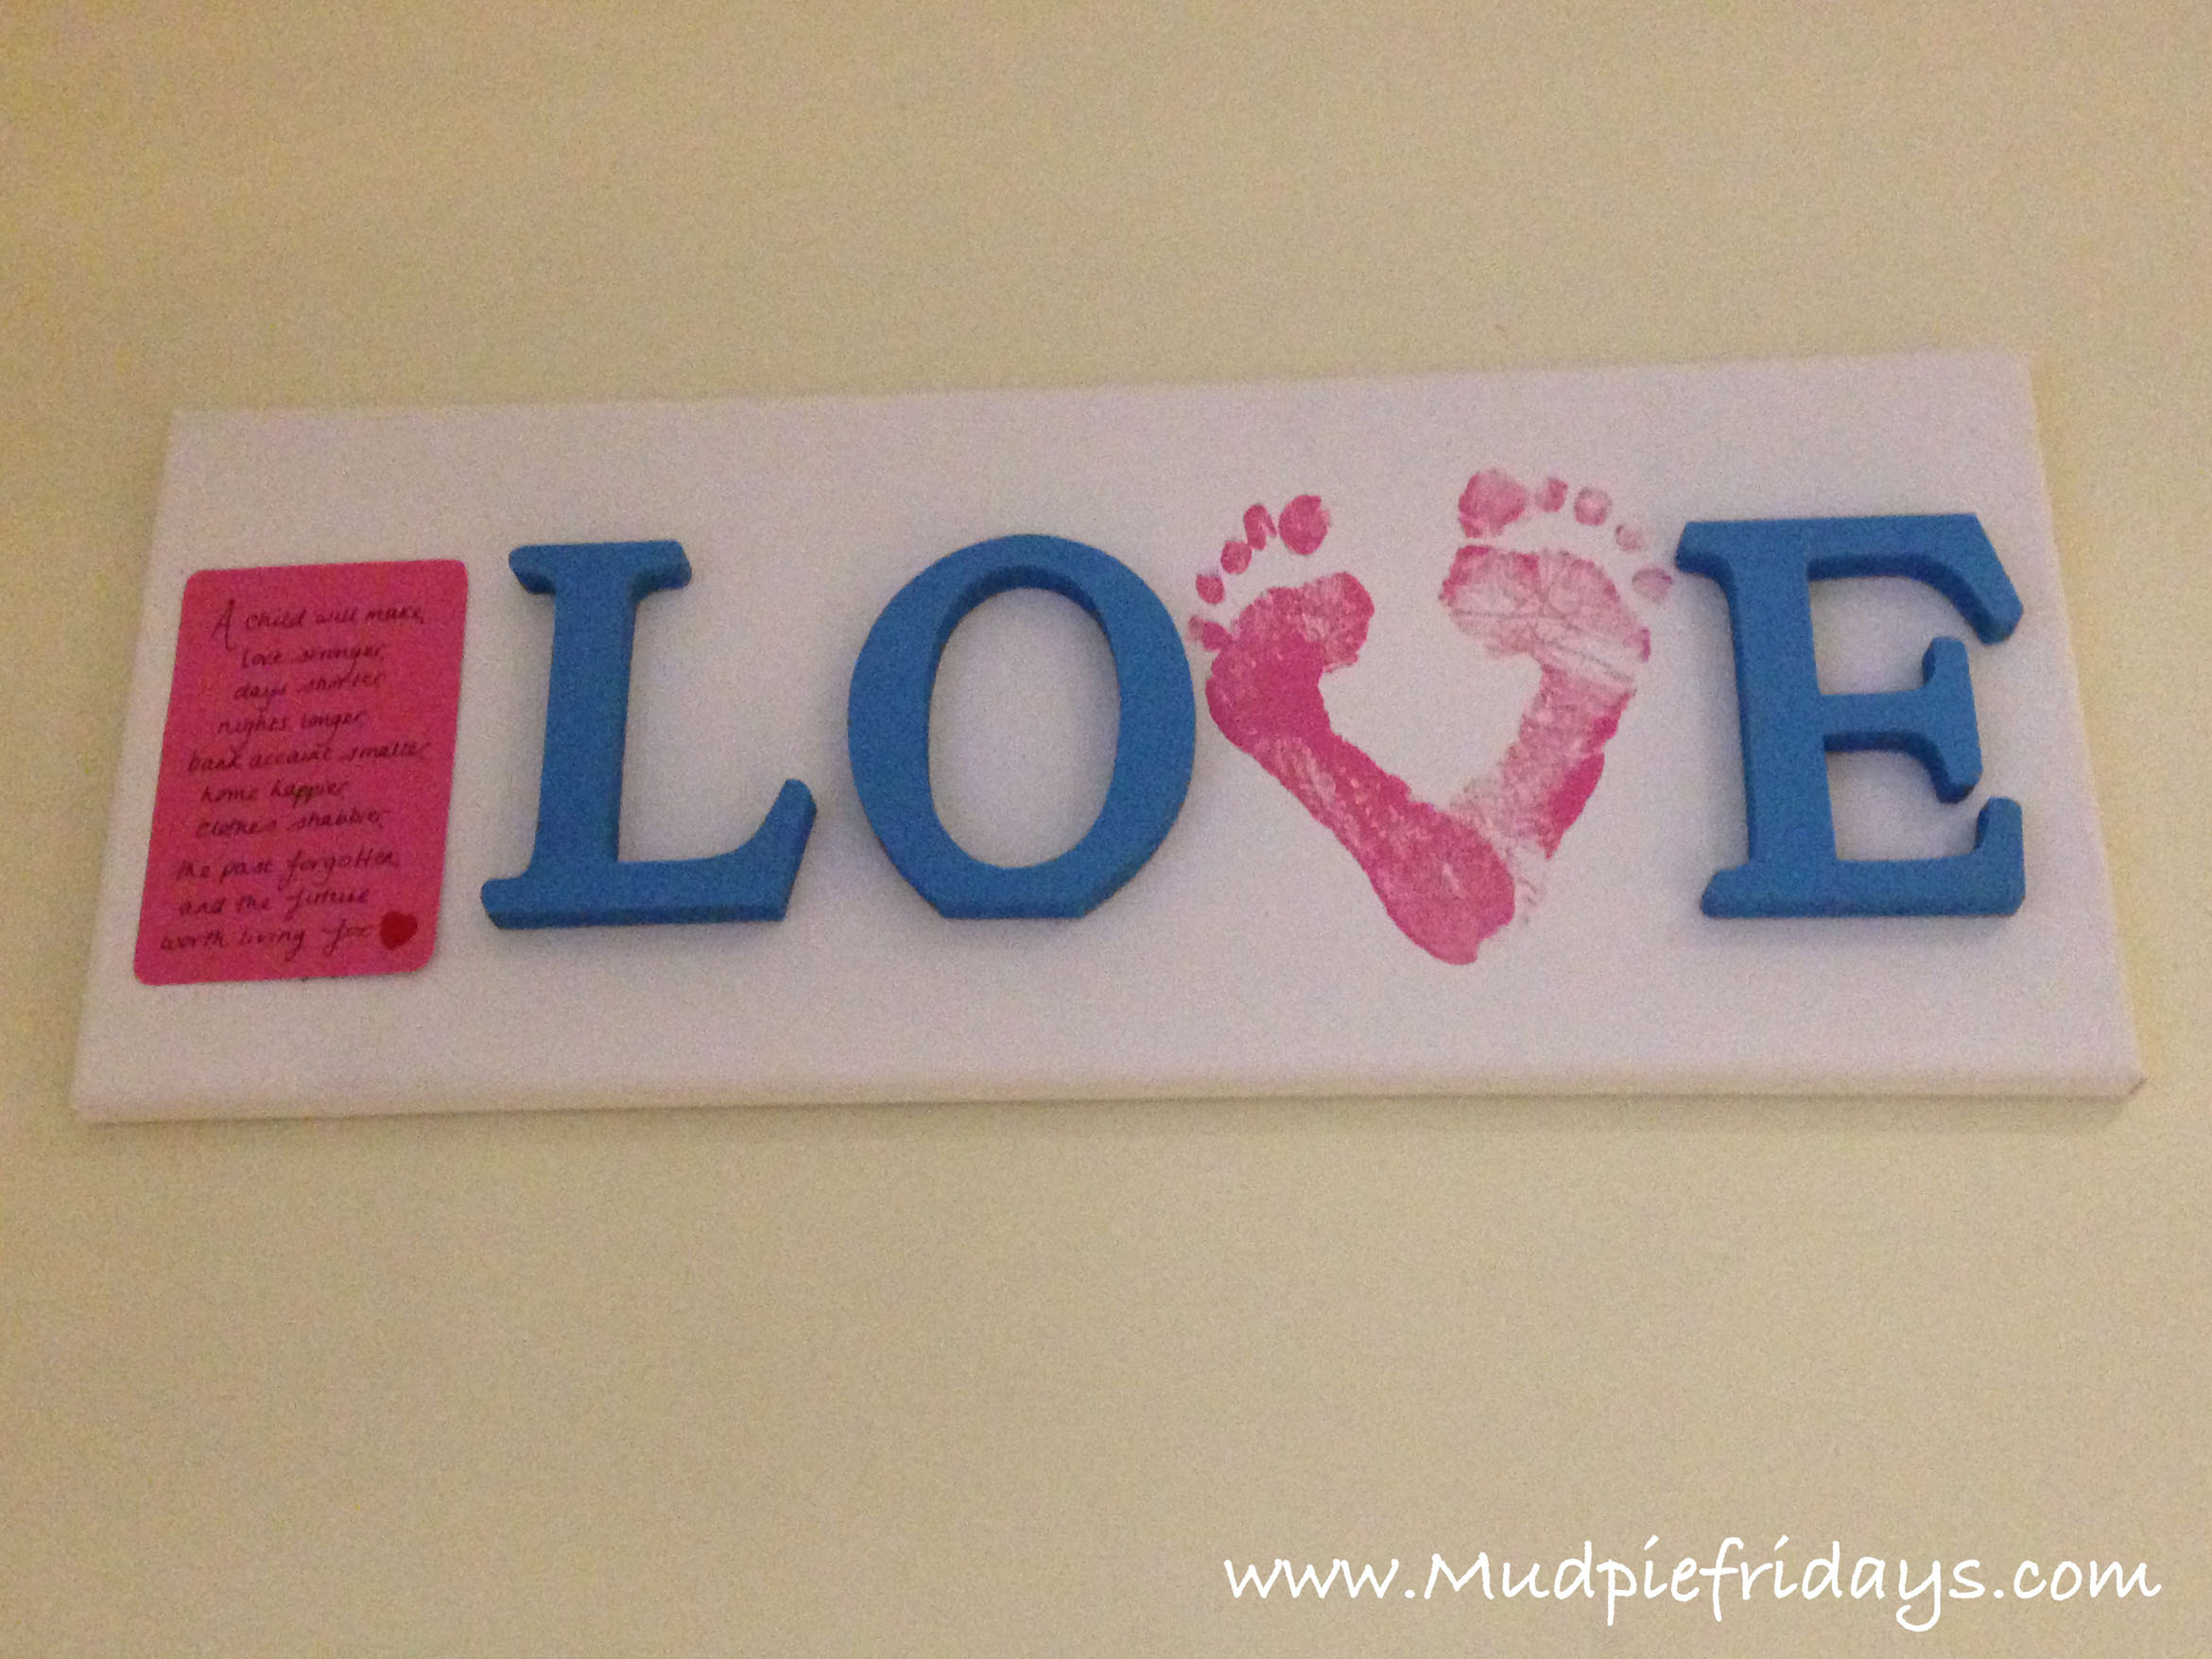 Easy DIY Fathers Day Gift - mudpiefridays.com